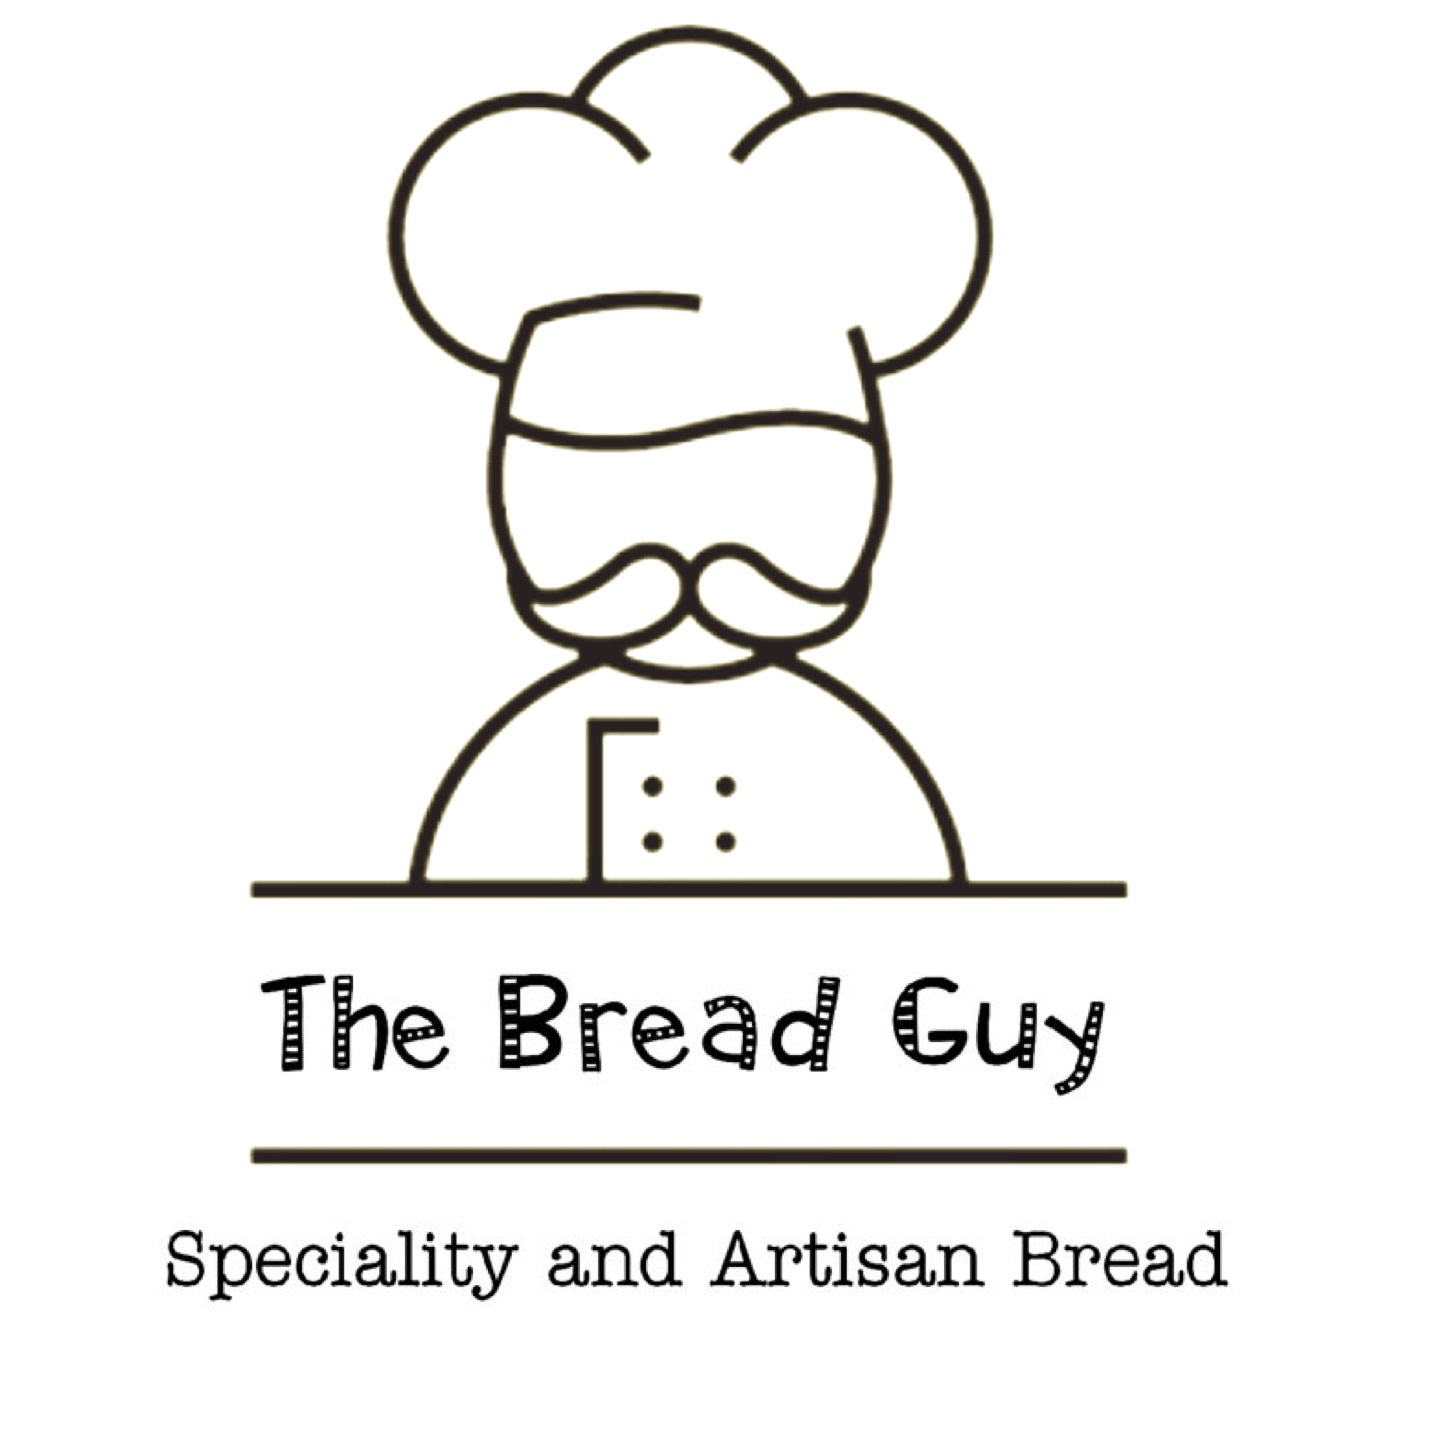 The Bread Guy